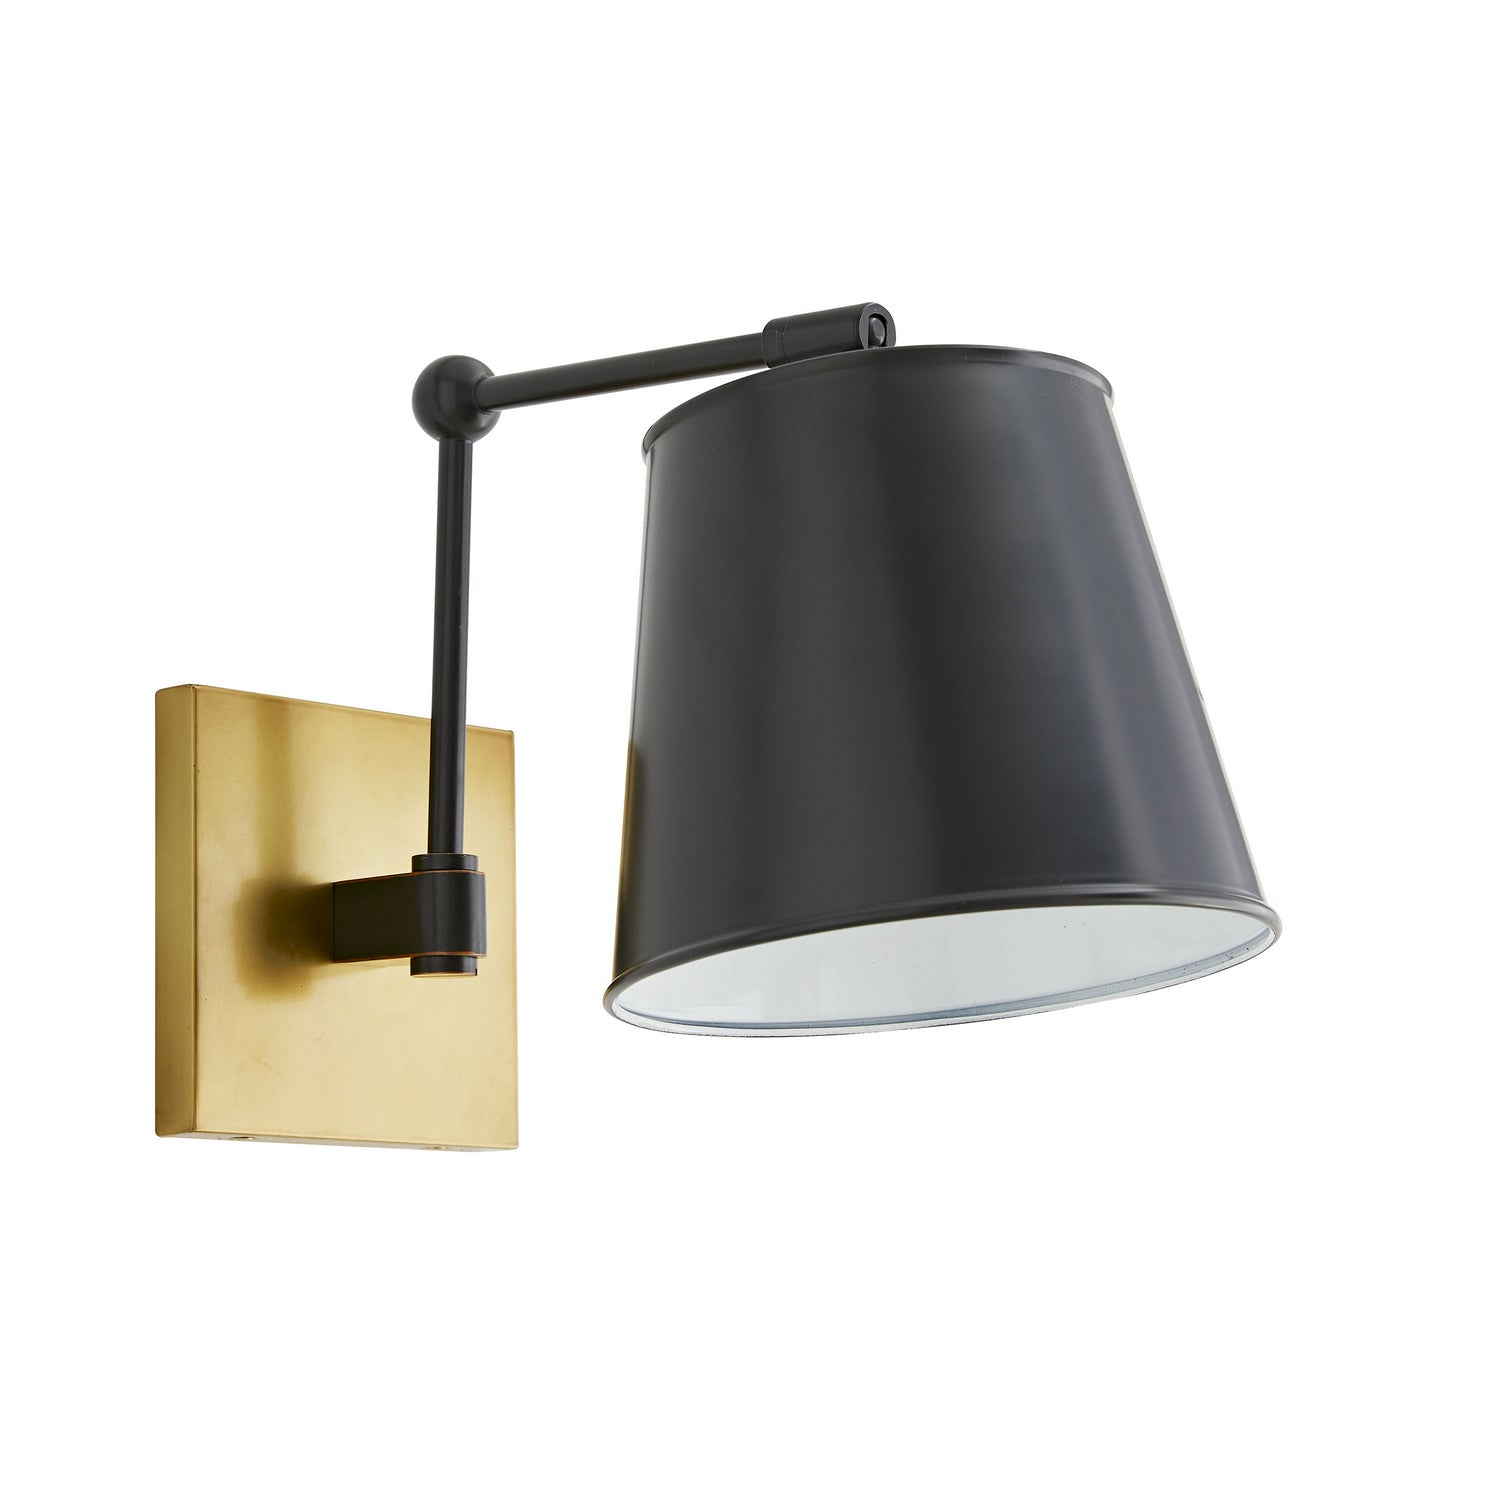 Arteriors - One Light Wall Sconce - Watson - Bronze